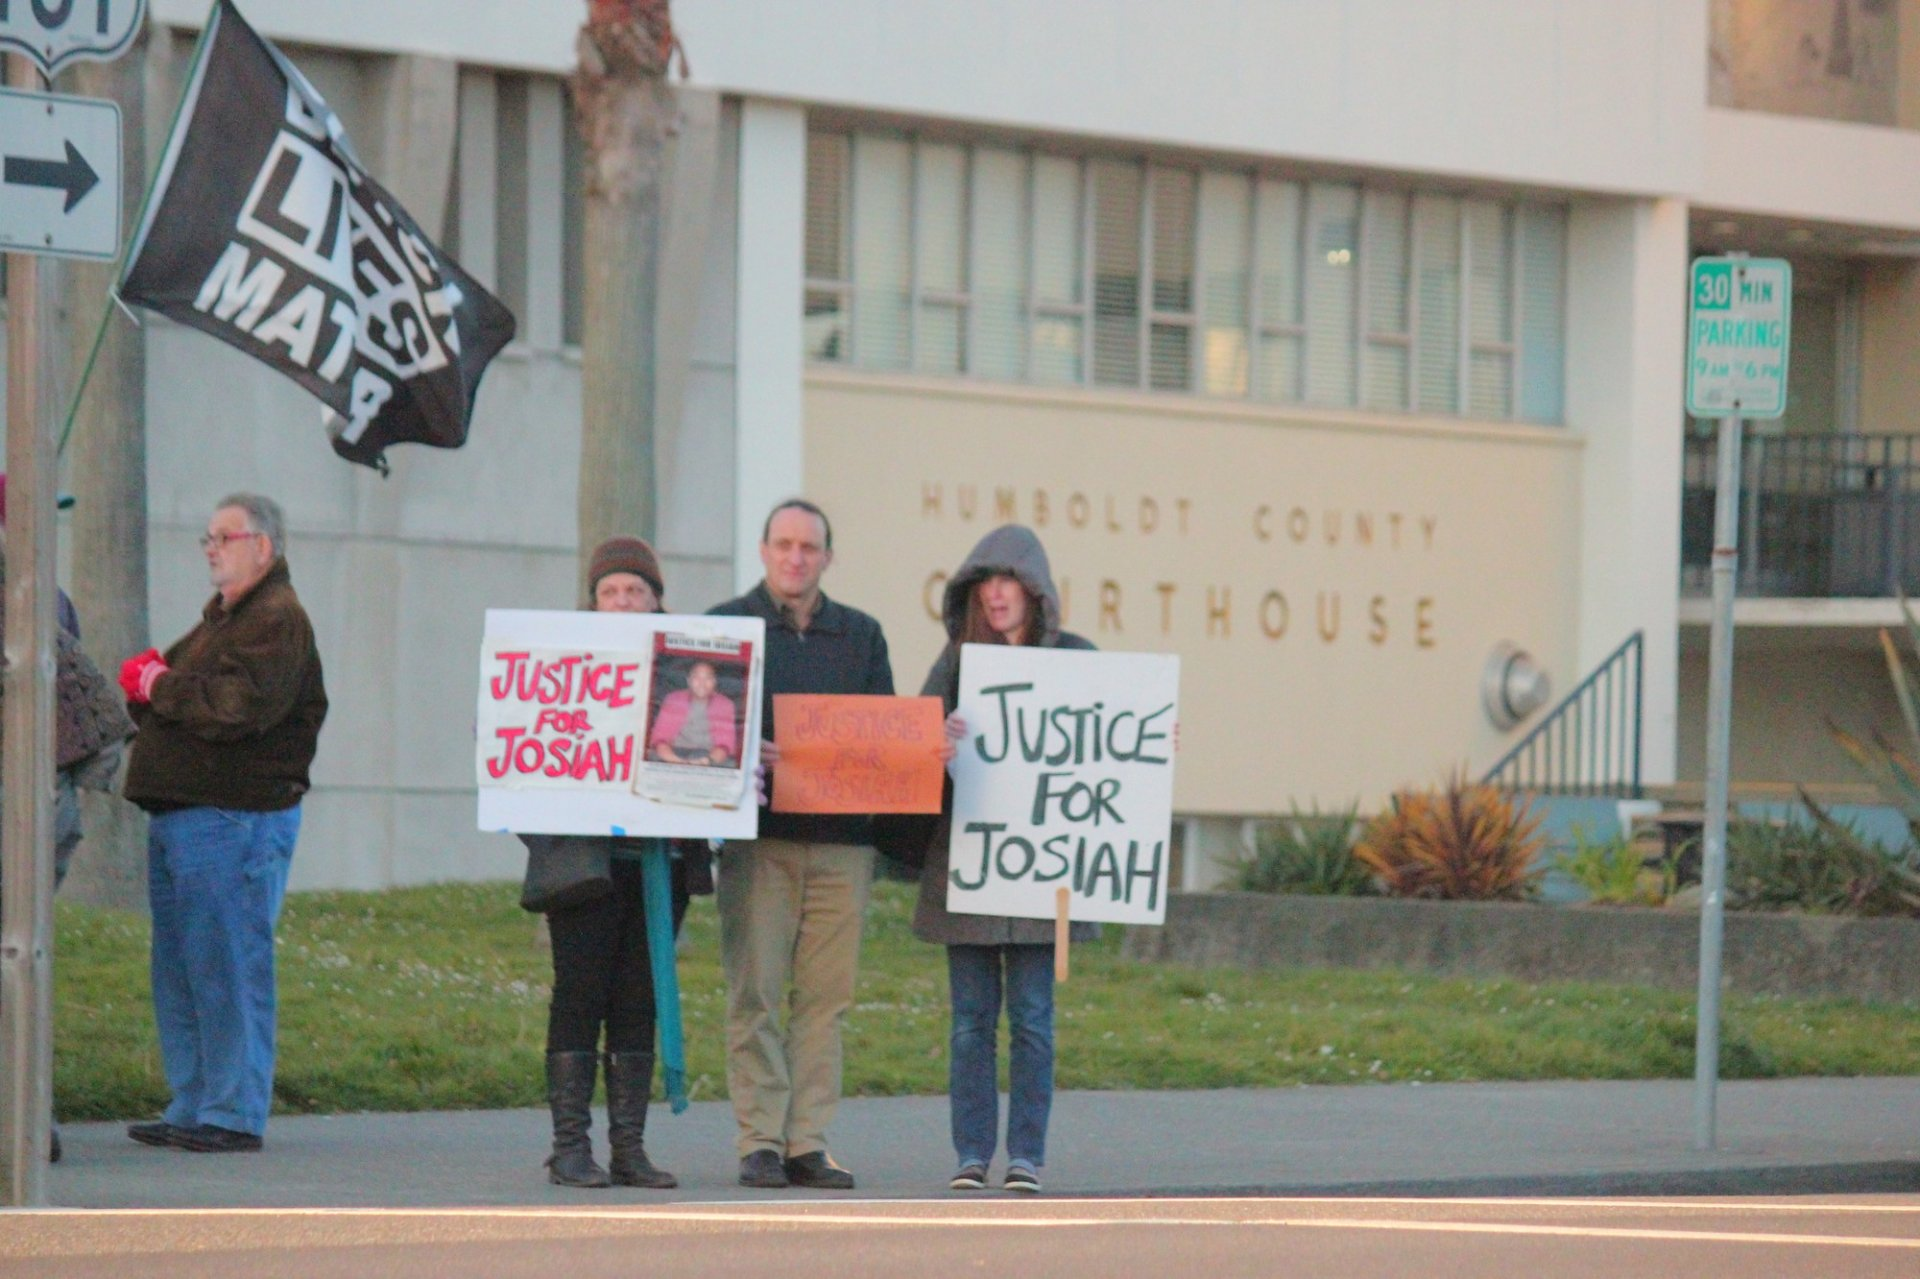 Protesters gathered in front of the Humboldt County Courthouse on March 13. | Photo by Freddy Brewster